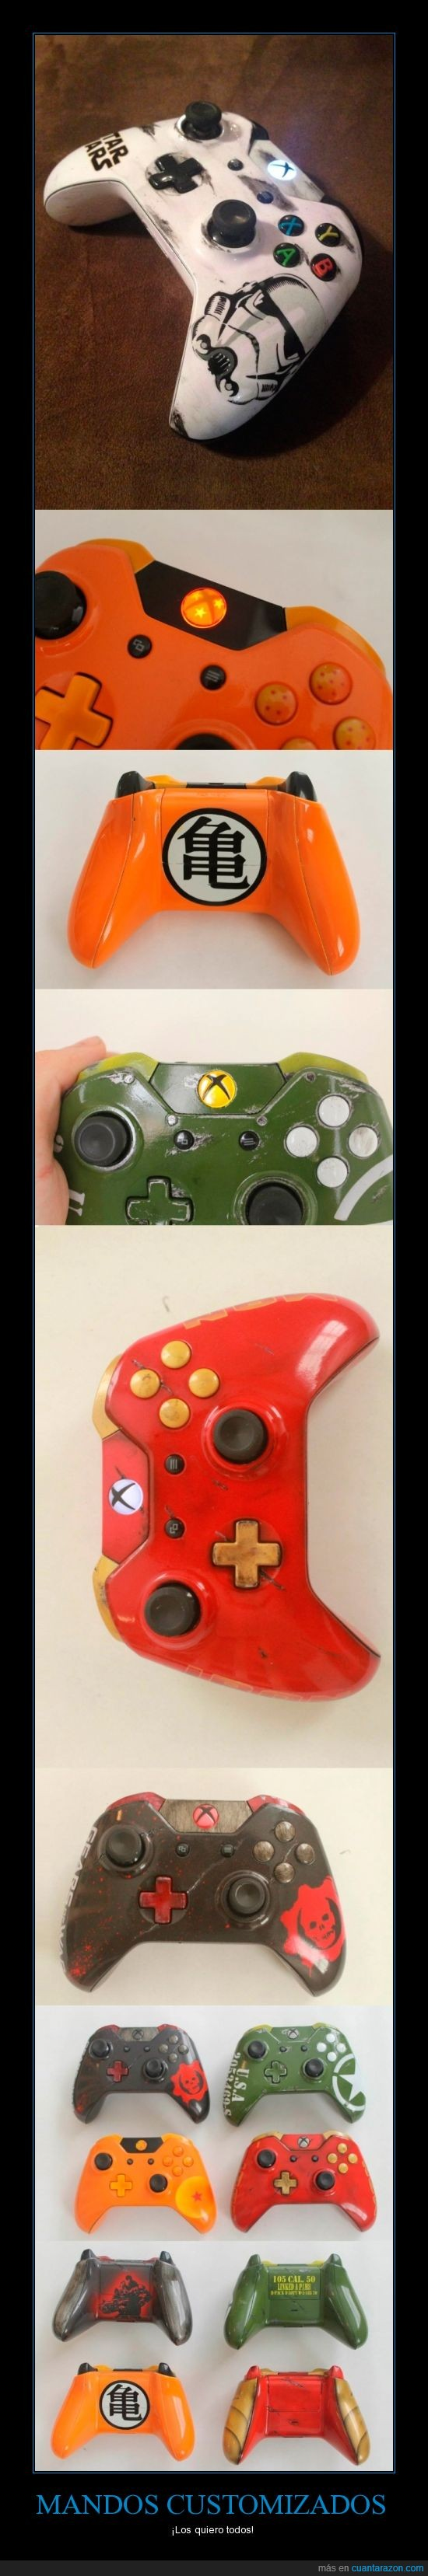 bola de dragon,Dragon ball,gears of war,iron man,mando,microsoft,star wars,stromtrooper,xbone,xbox one